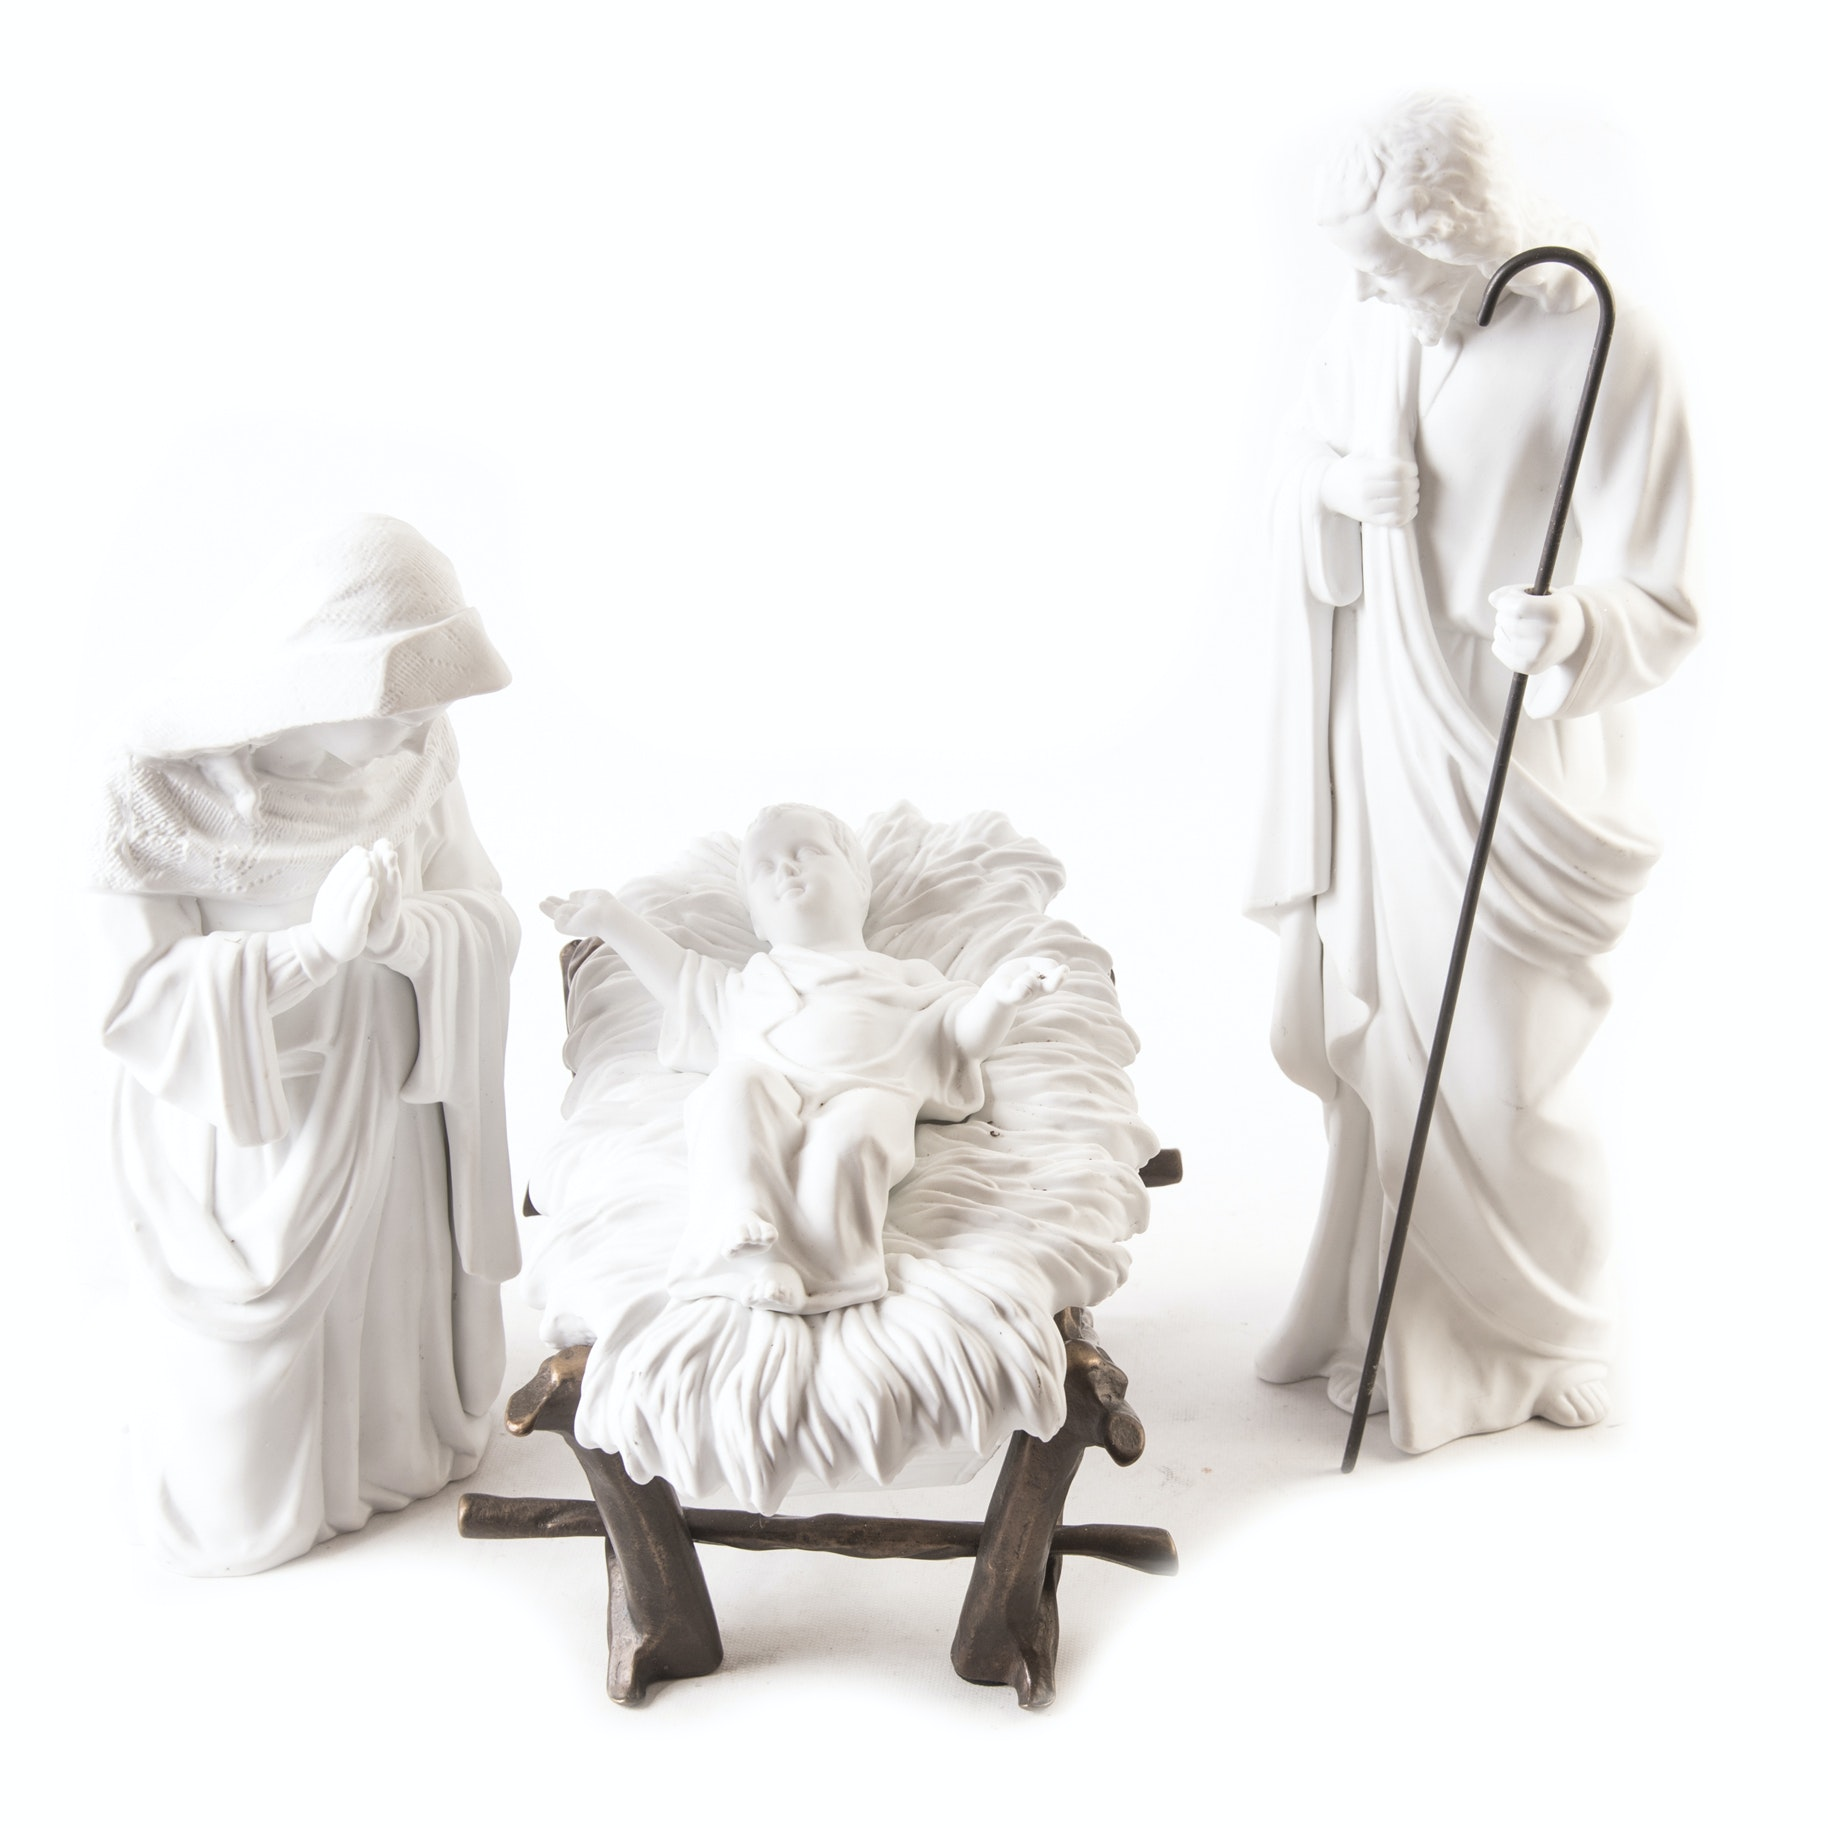 Nativity Scene Figurines By Department 56